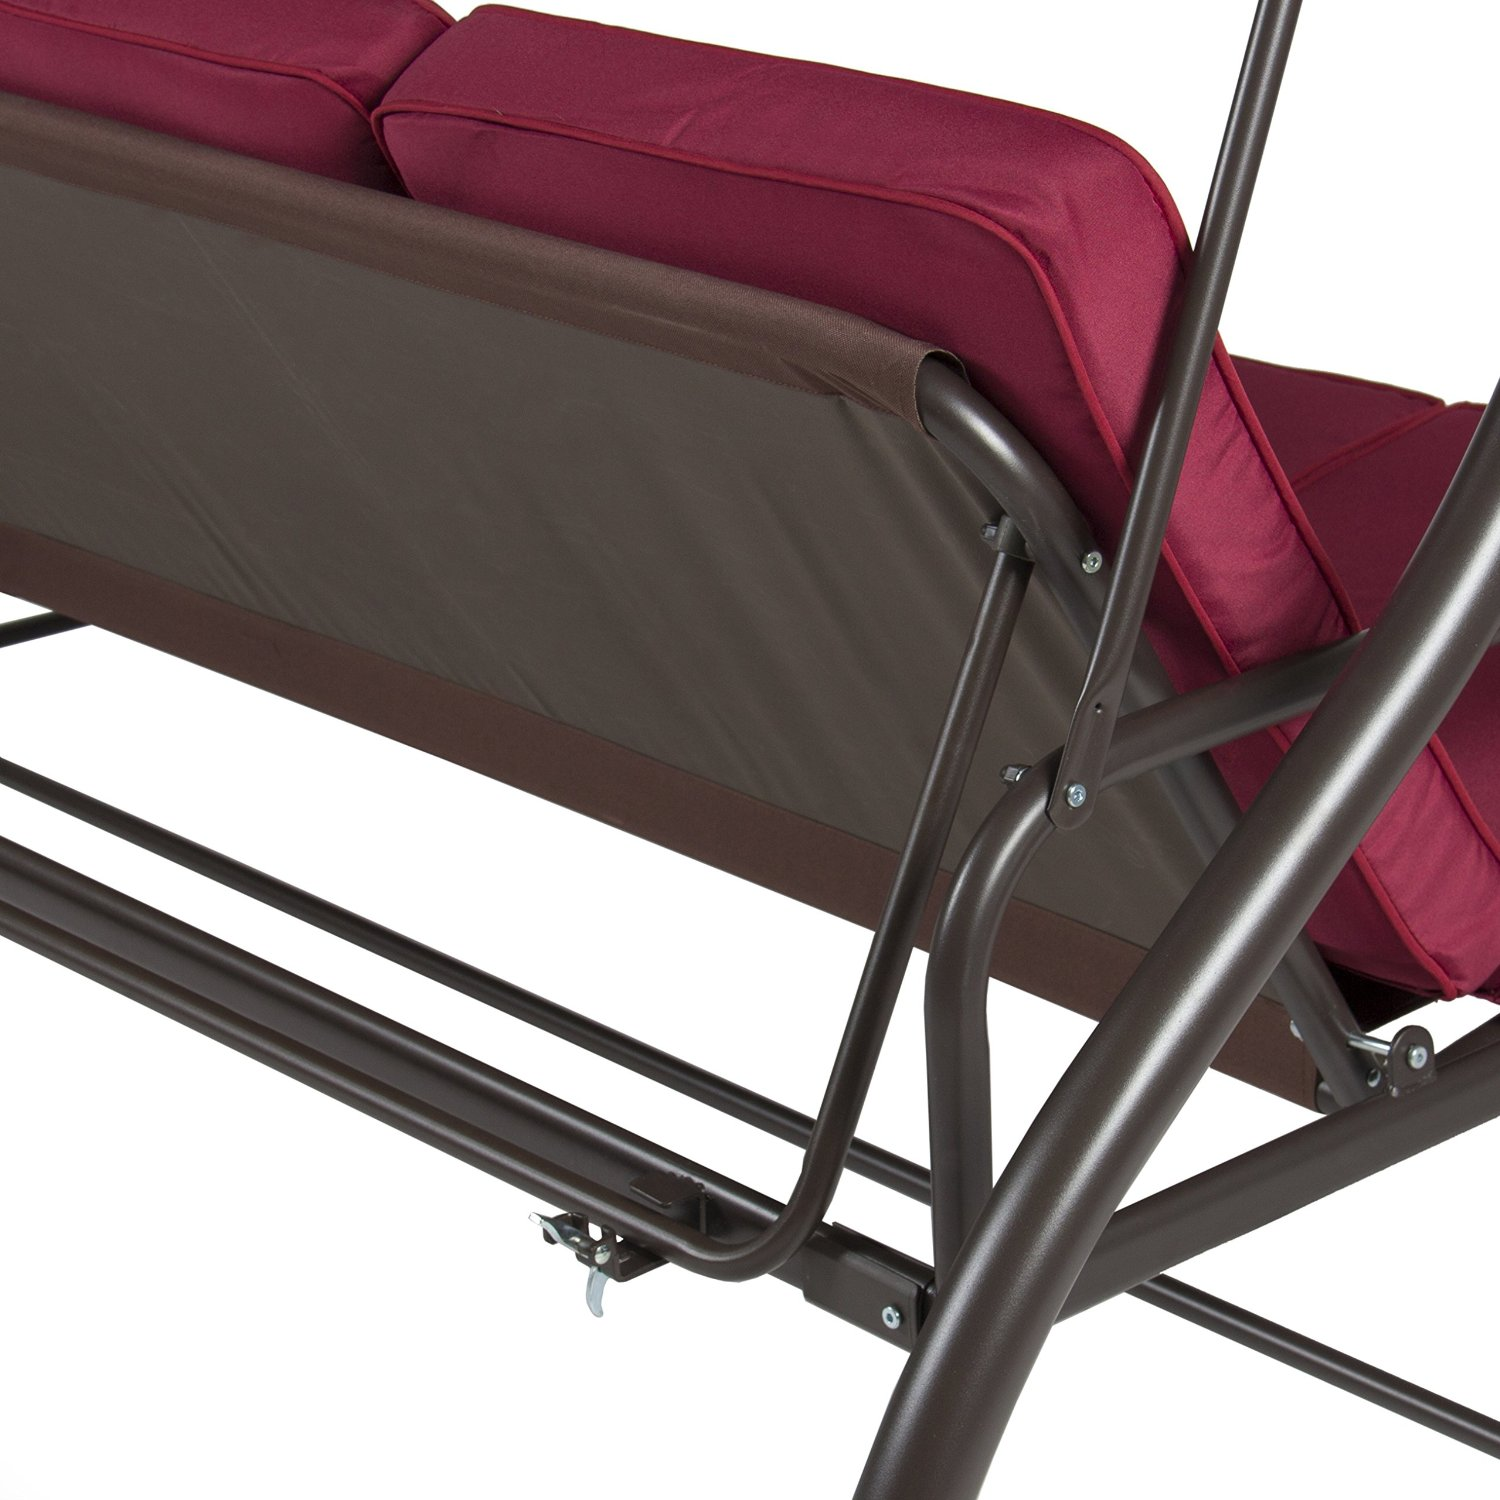 Patio Swing Converting Bed With Stand Burgundy Ebay